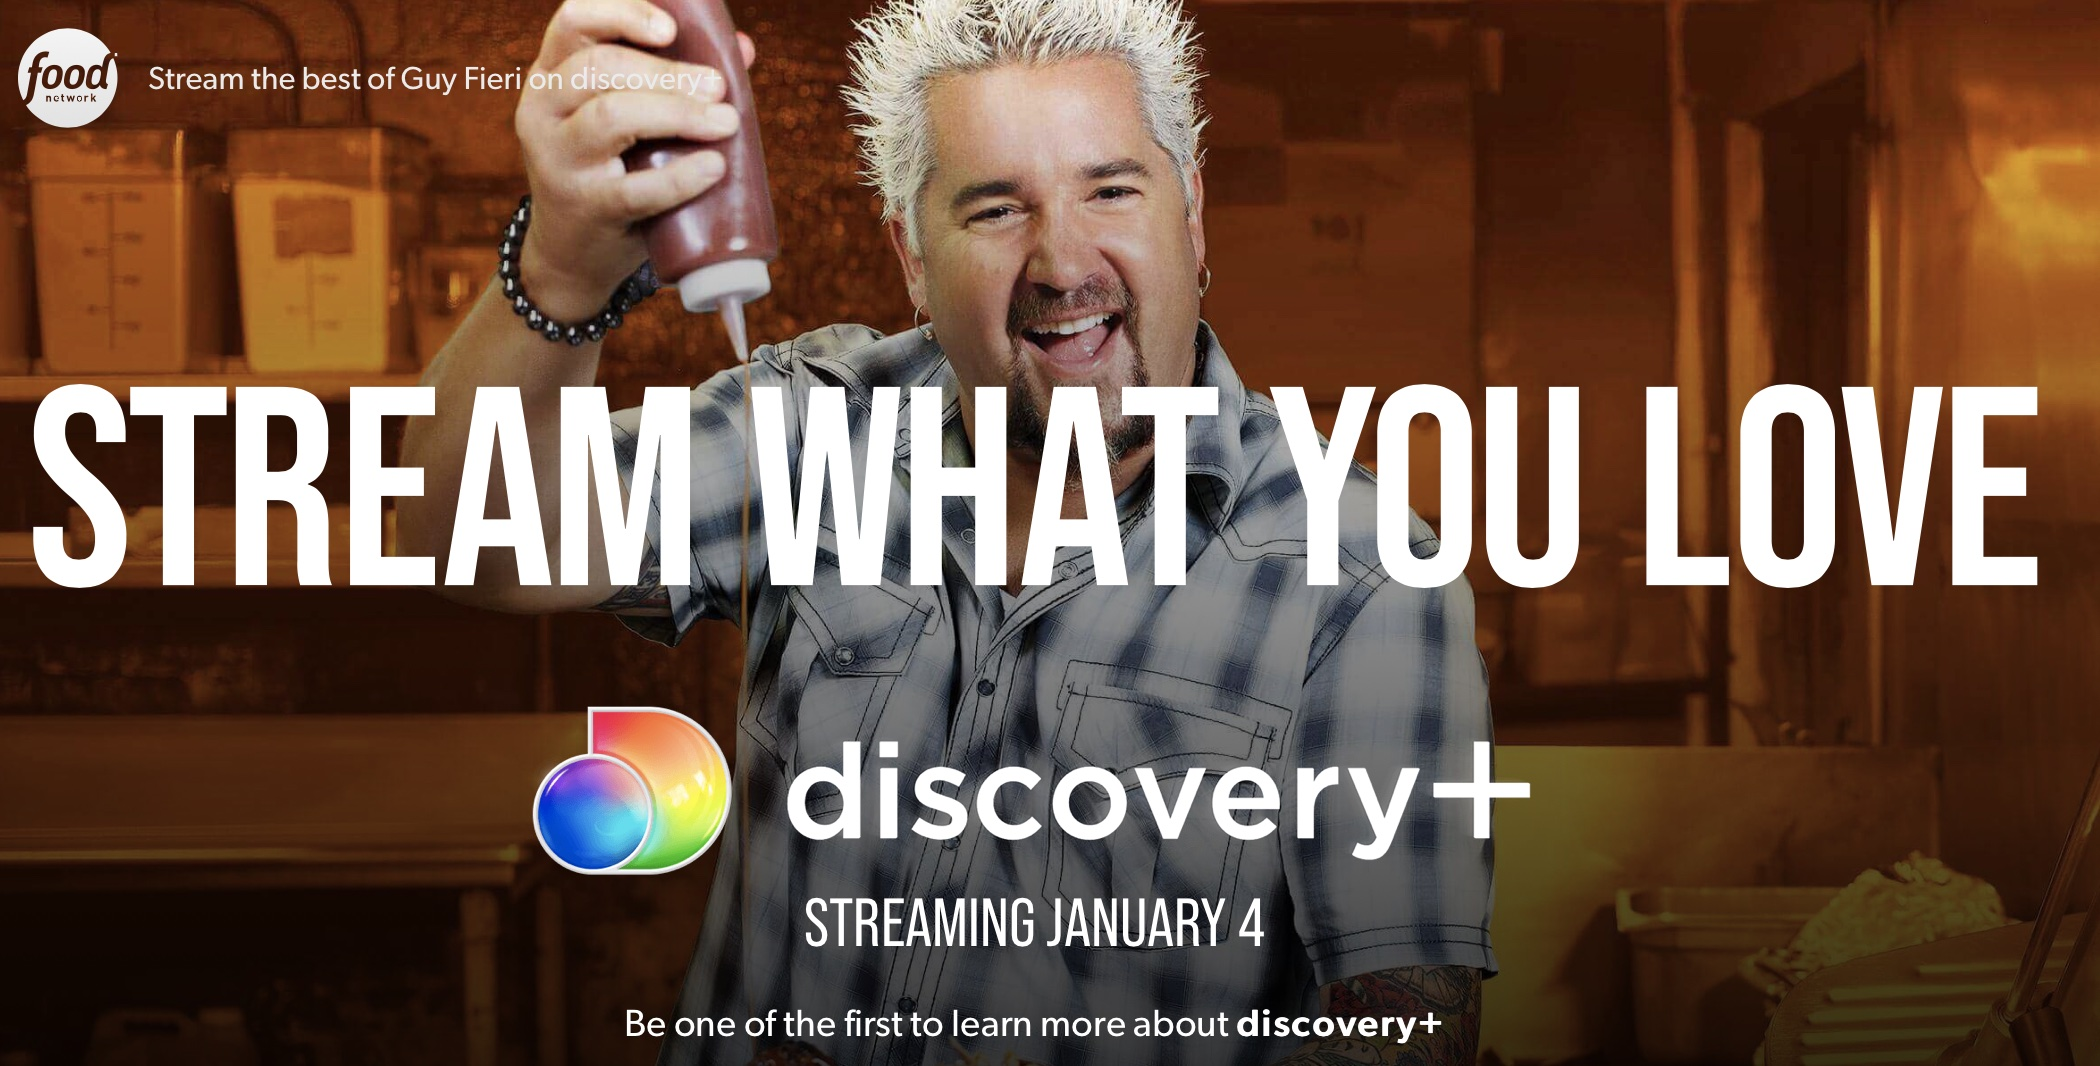 Discovery+ Streaming Platform Launches in January for $5/Month